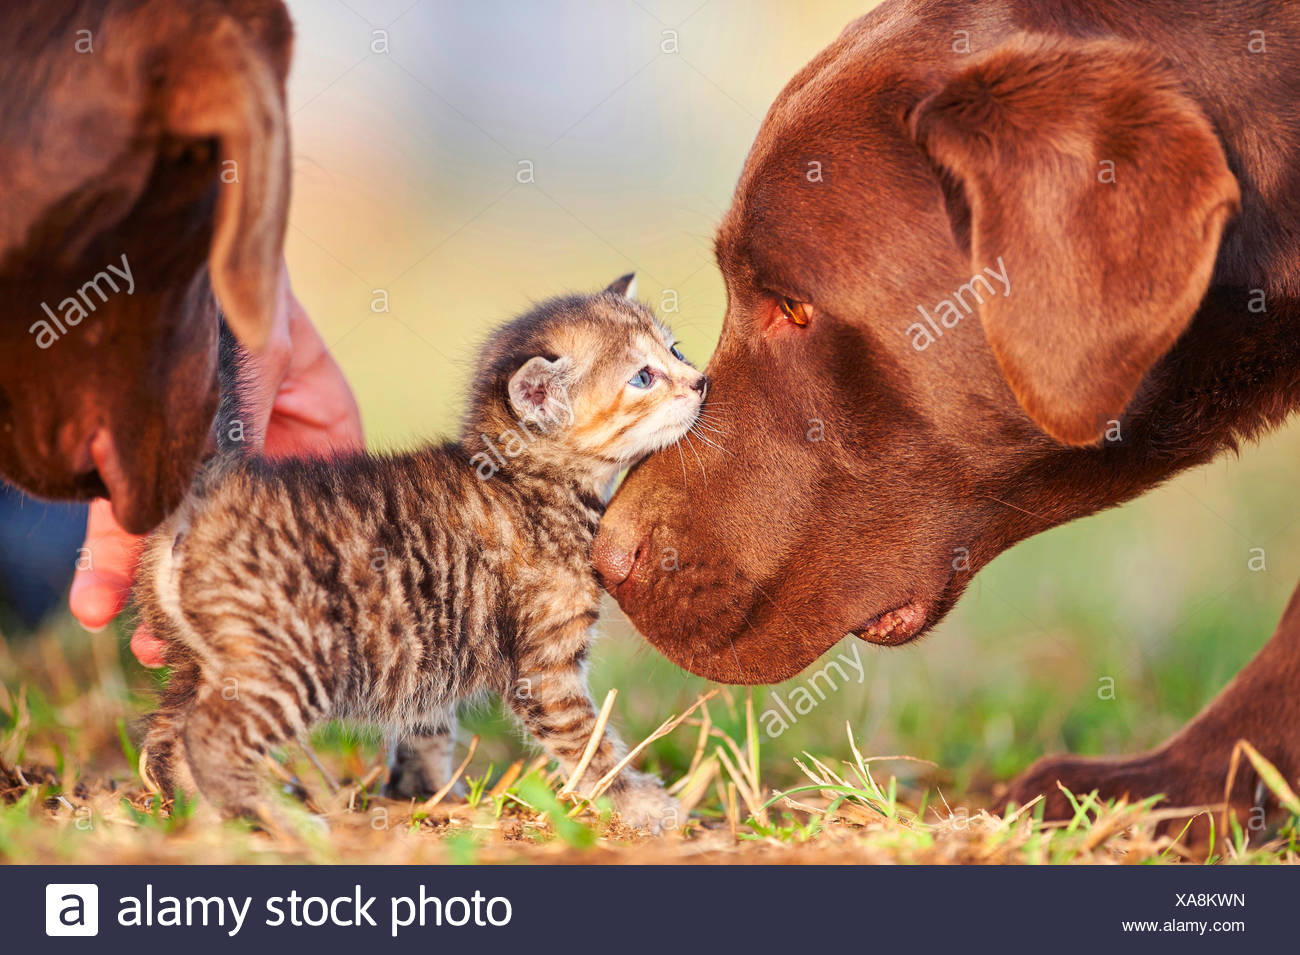 Labrador Retriever (Canis lupus f. familiaris), Labrador Retriever sniffing carefully at a five weeks old kitten , Germany - Stock Image